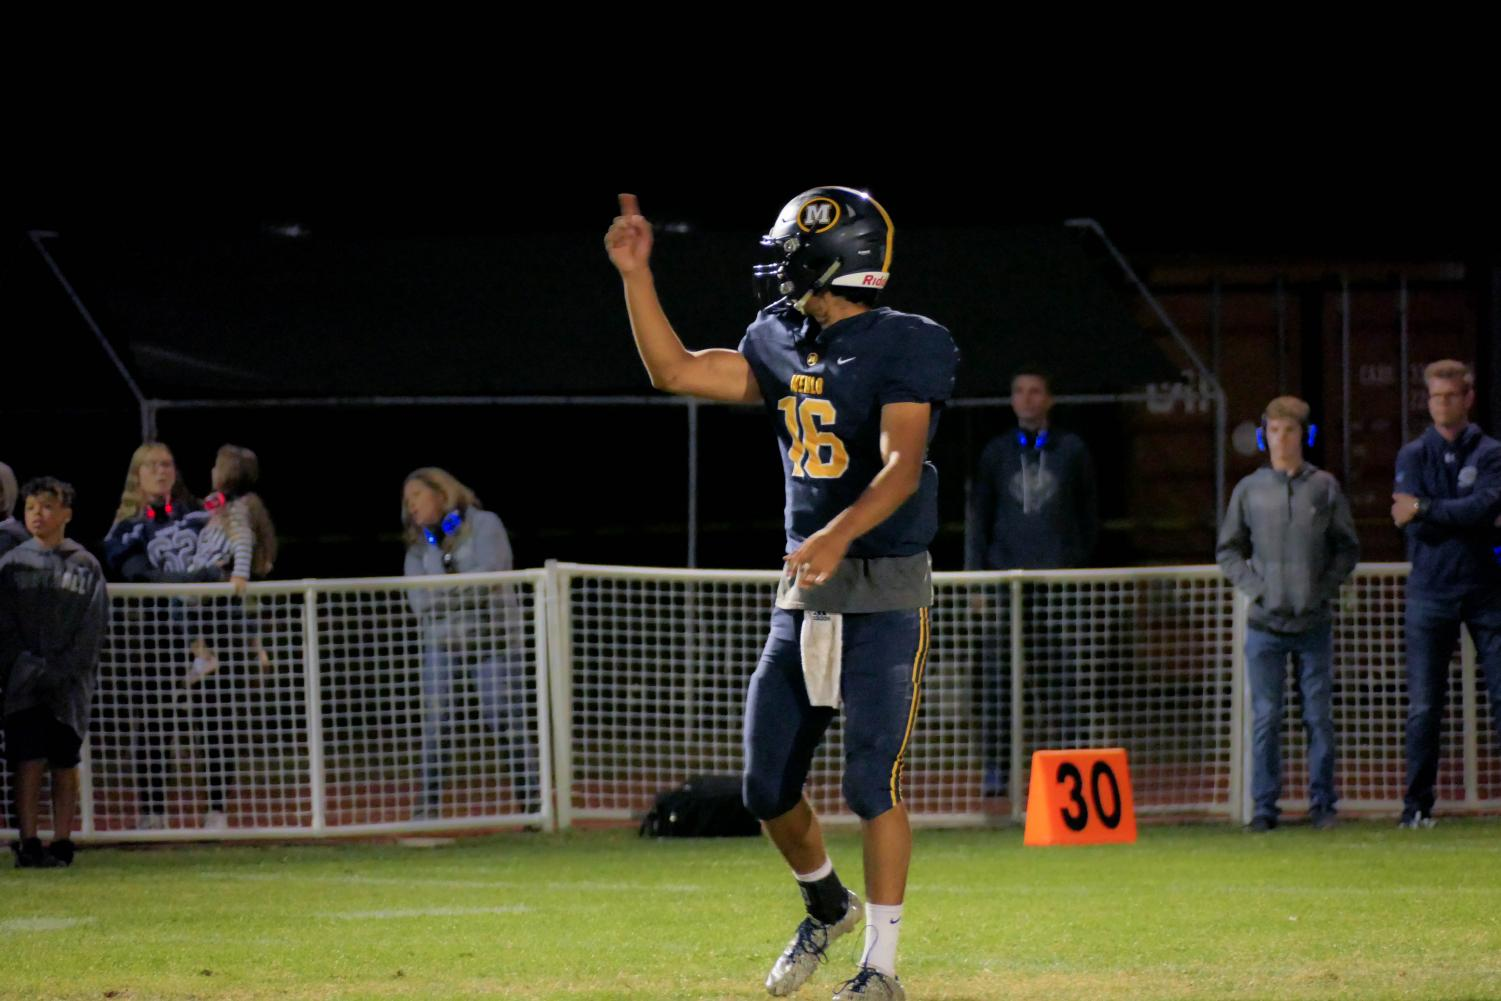 Senior quarterback Kevin Alarcon celebrates another first down and pushes his team to keep up the momentum. Staff Photo: Bella Guel.